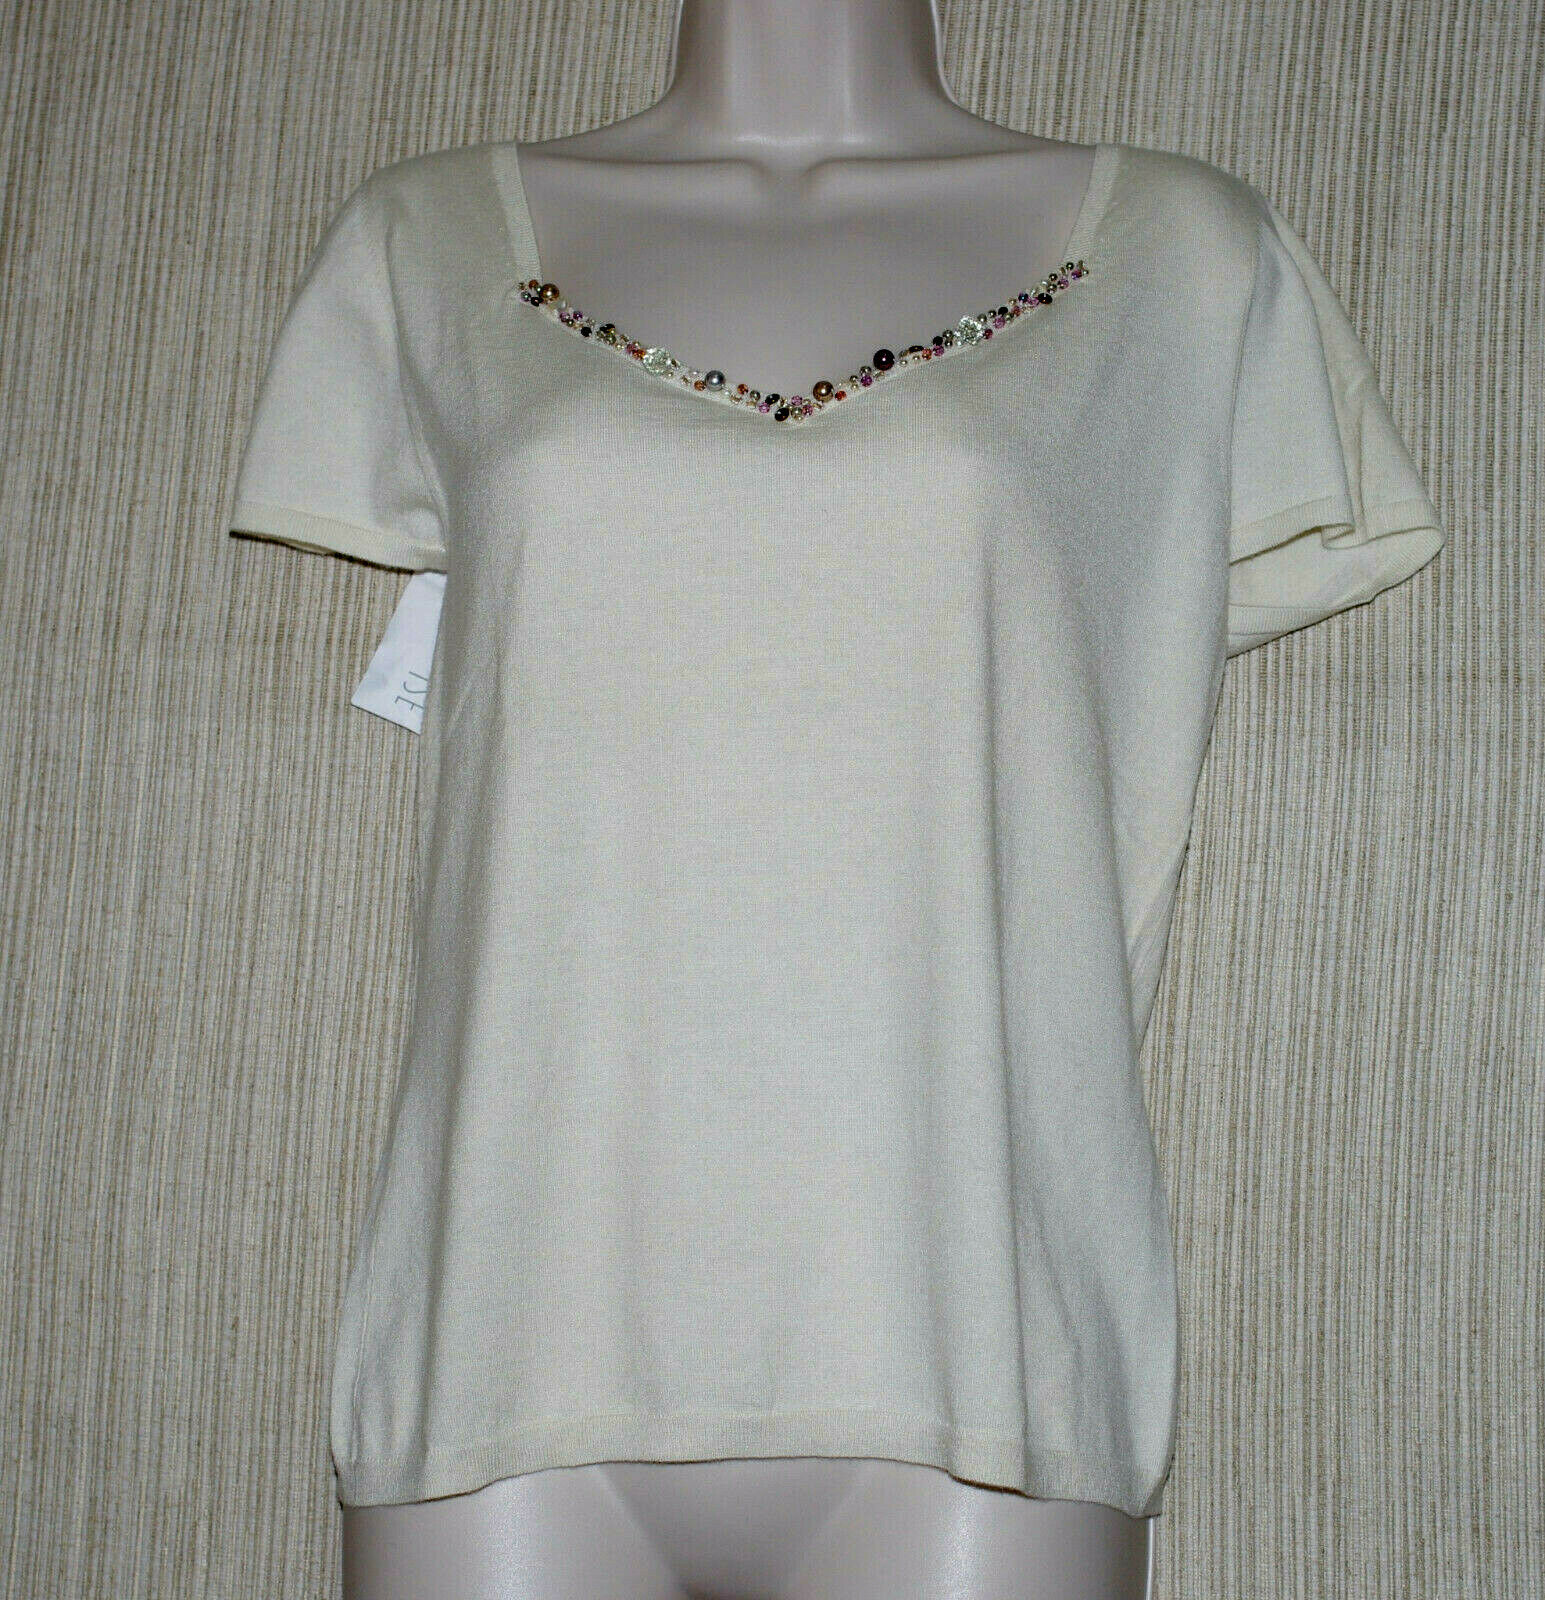 TSE Cashmere Silk Blend Cap Sleeve Beaded Crew Neck Weiß Sweater Größe L